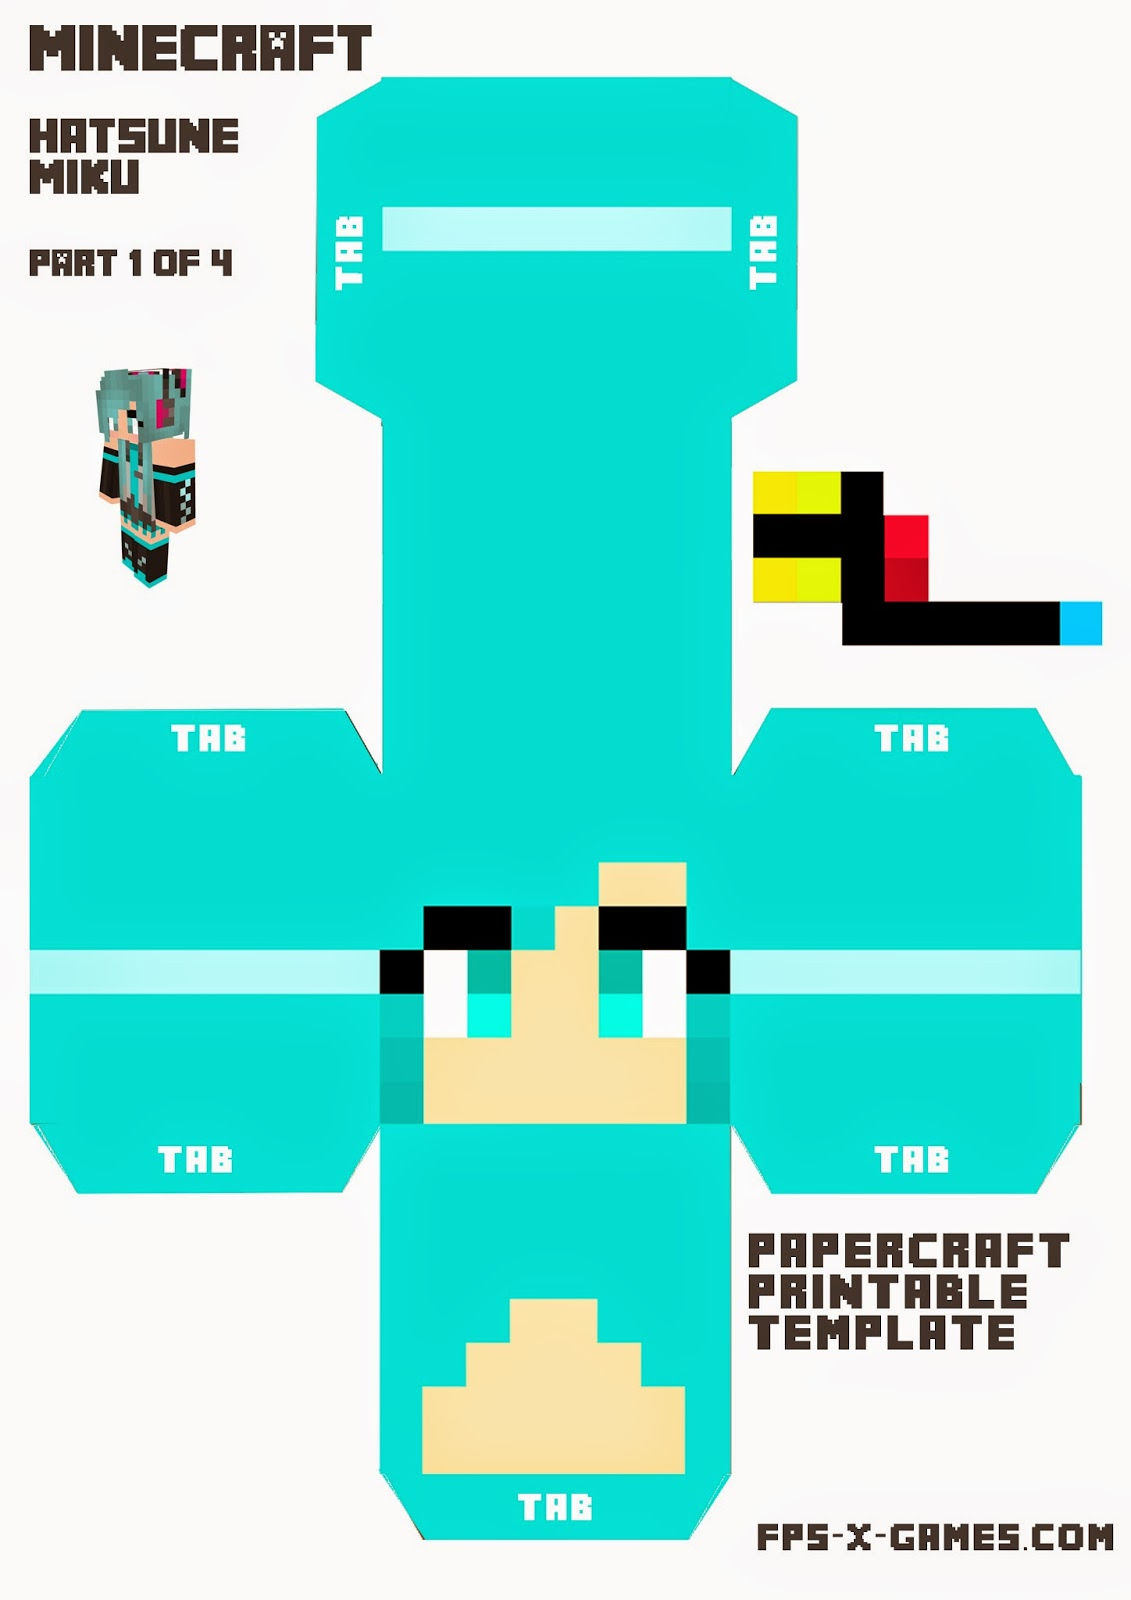 Large Printable Hatsune Miku Minecraft Character 1 of 4